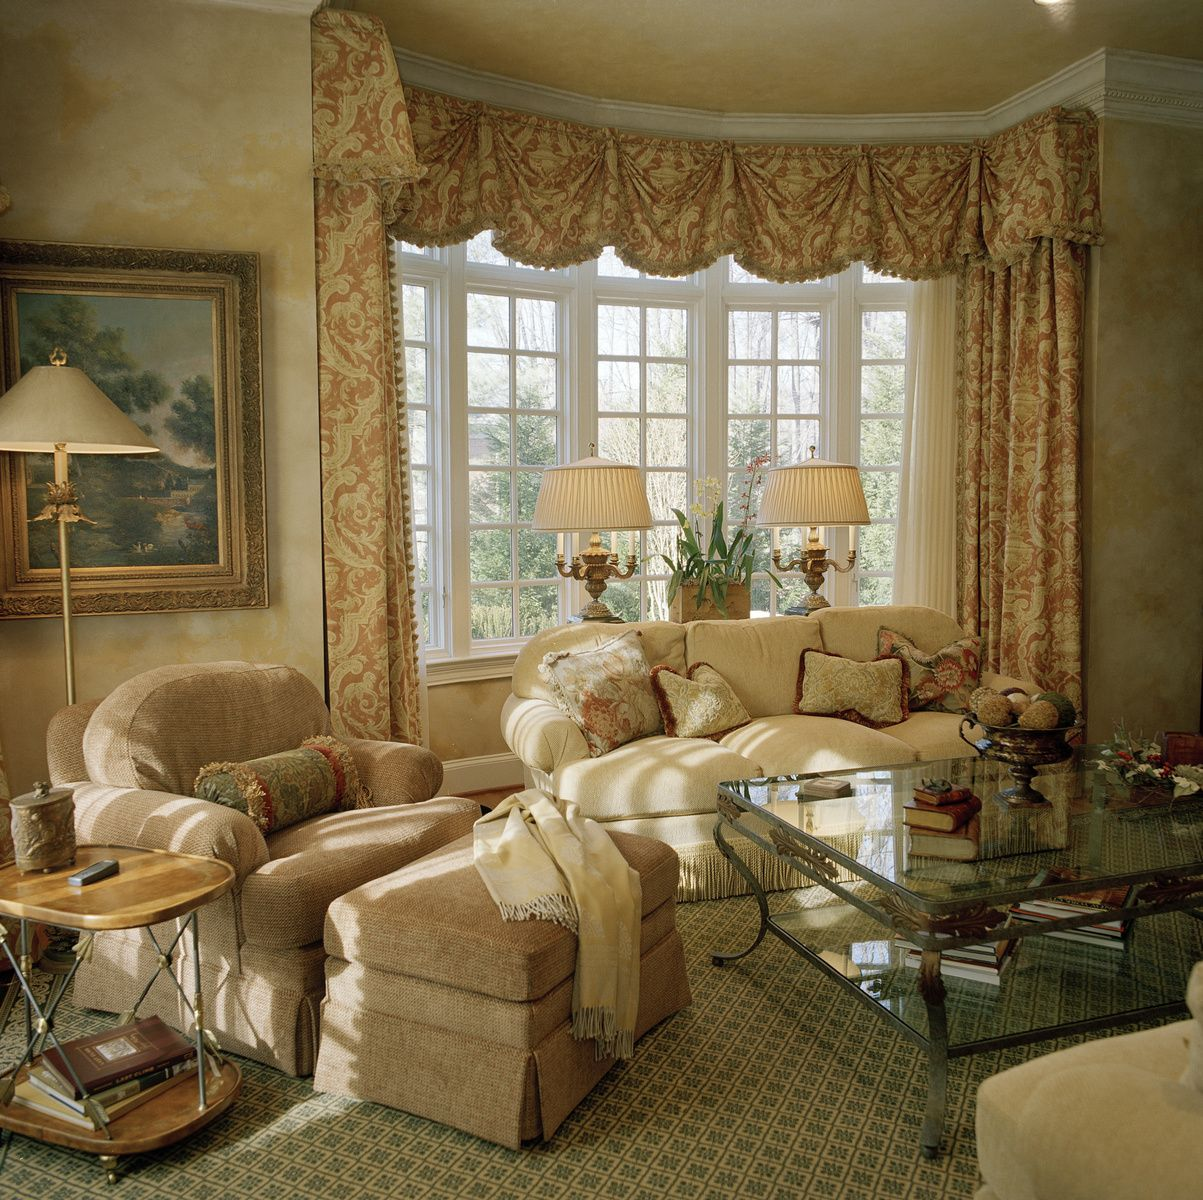 Ann kenkel 39 s portfolio window treatments drapery with - Living room bay window treatments ...